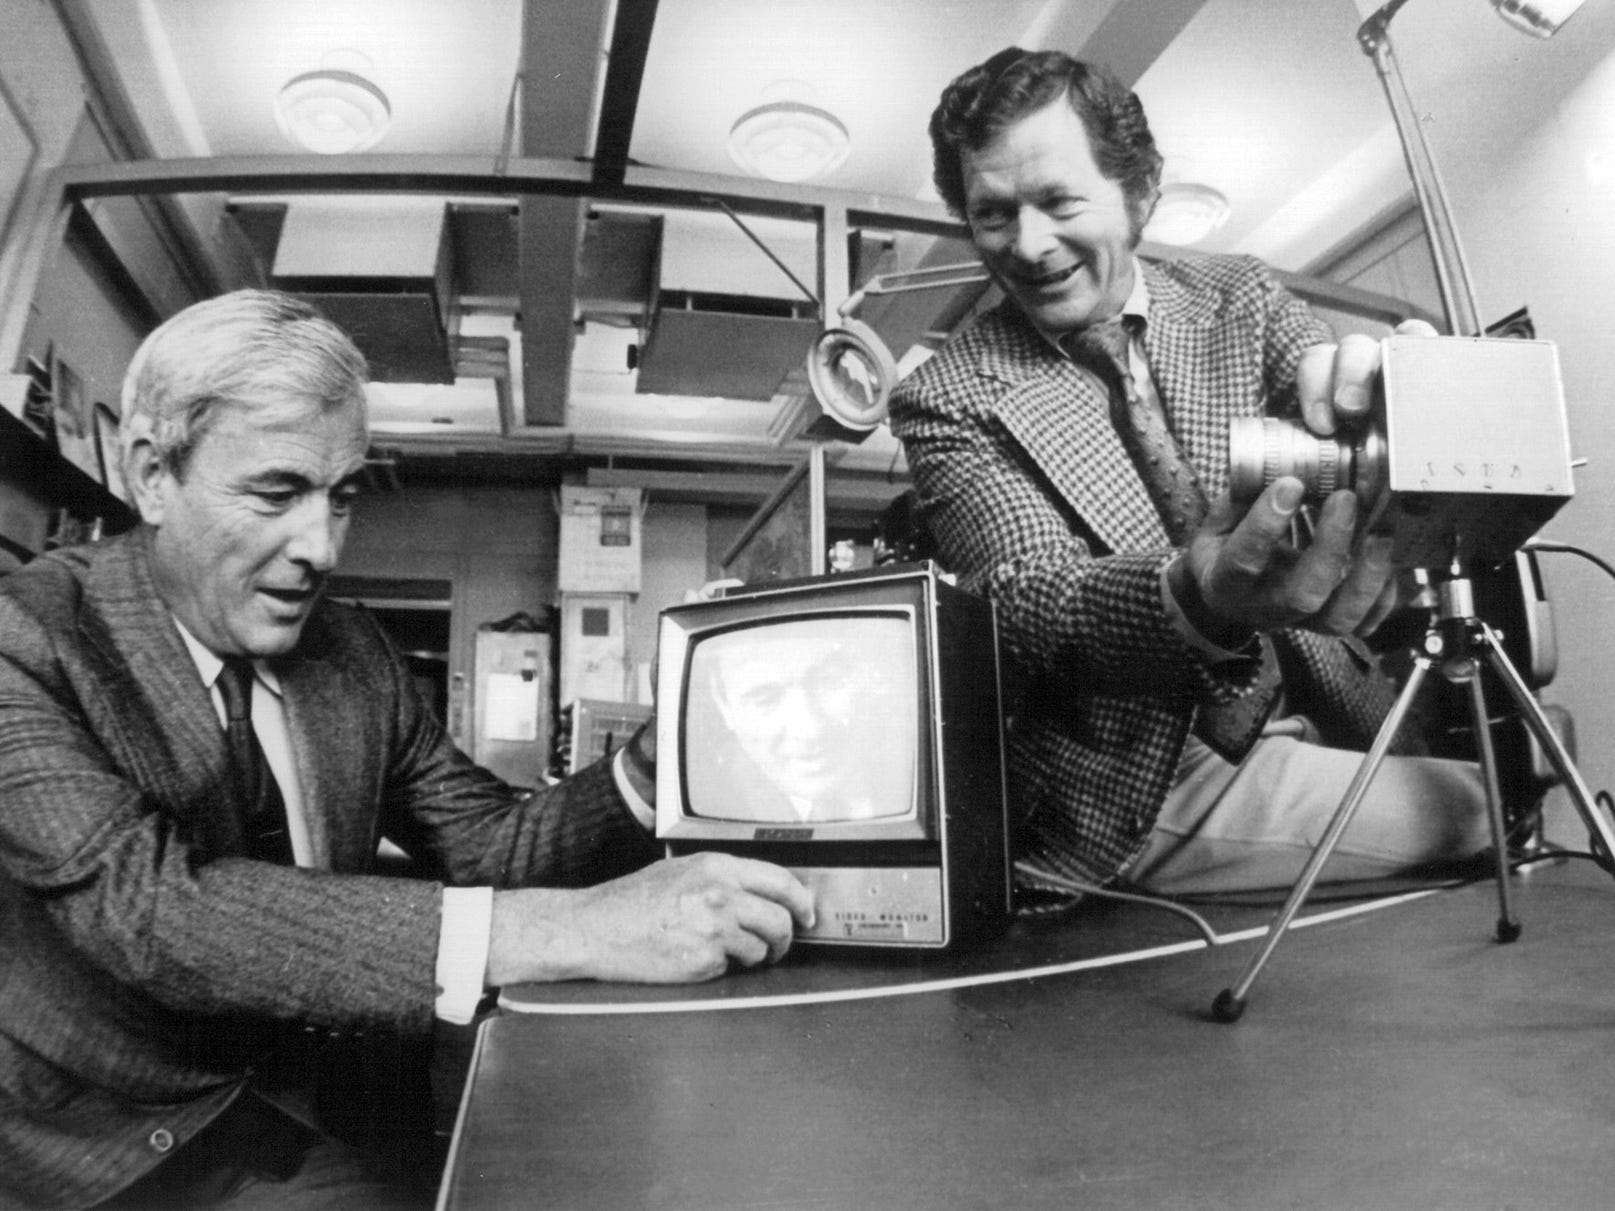 This Dec. 20, 1974 photo provided Tuesday Oct. 6, 2009 by Alcatel-Lucent shows Bell Labs researchers Willard Boyle, left, and George Smith at Bell Labs in Murray Hill, N.J., with the charge-coupled device, which transforms patterns of light into useful digital information. Smith and Boyle, and Charles K. Kao, whose research in the 1960s laid the foundation for digital images and lightning-fast communication shared the 2009 Nobel Prize in physics Tuesday for their work developing fiber-optic cable and the sensor at the heart of digital cameras.